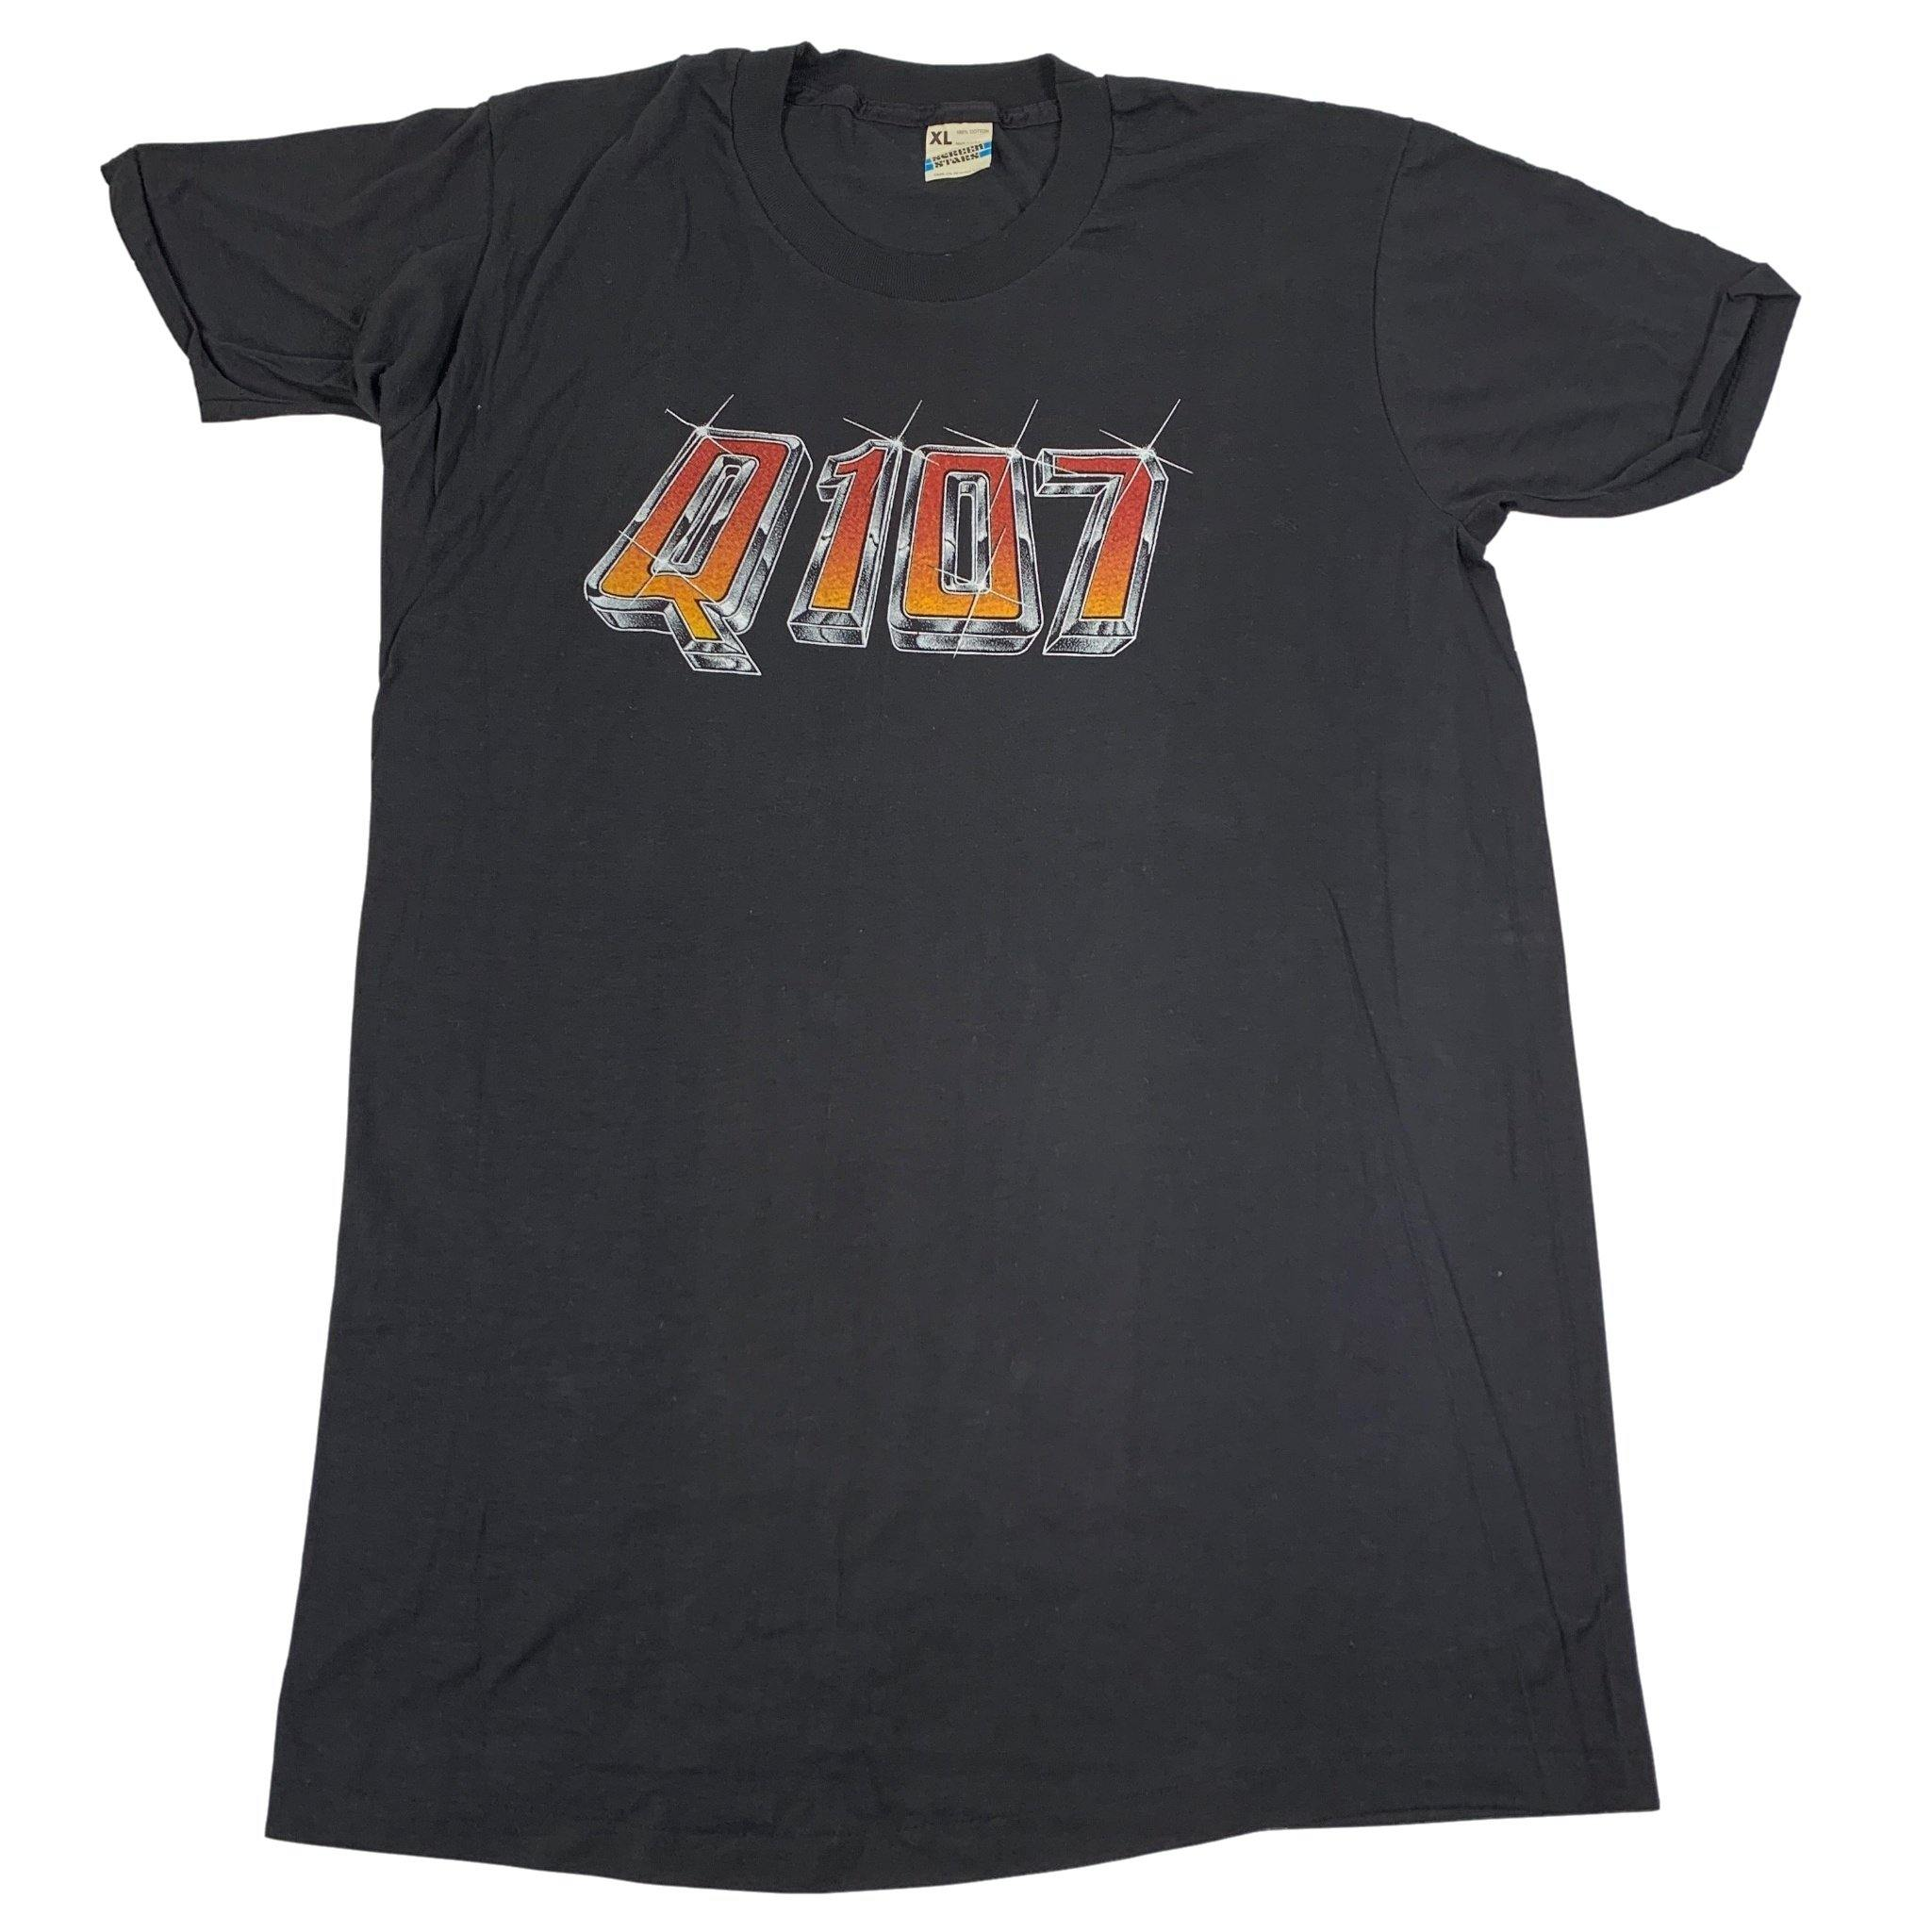 "Vintage Q107 ""The Beatles"" T-Shirt"